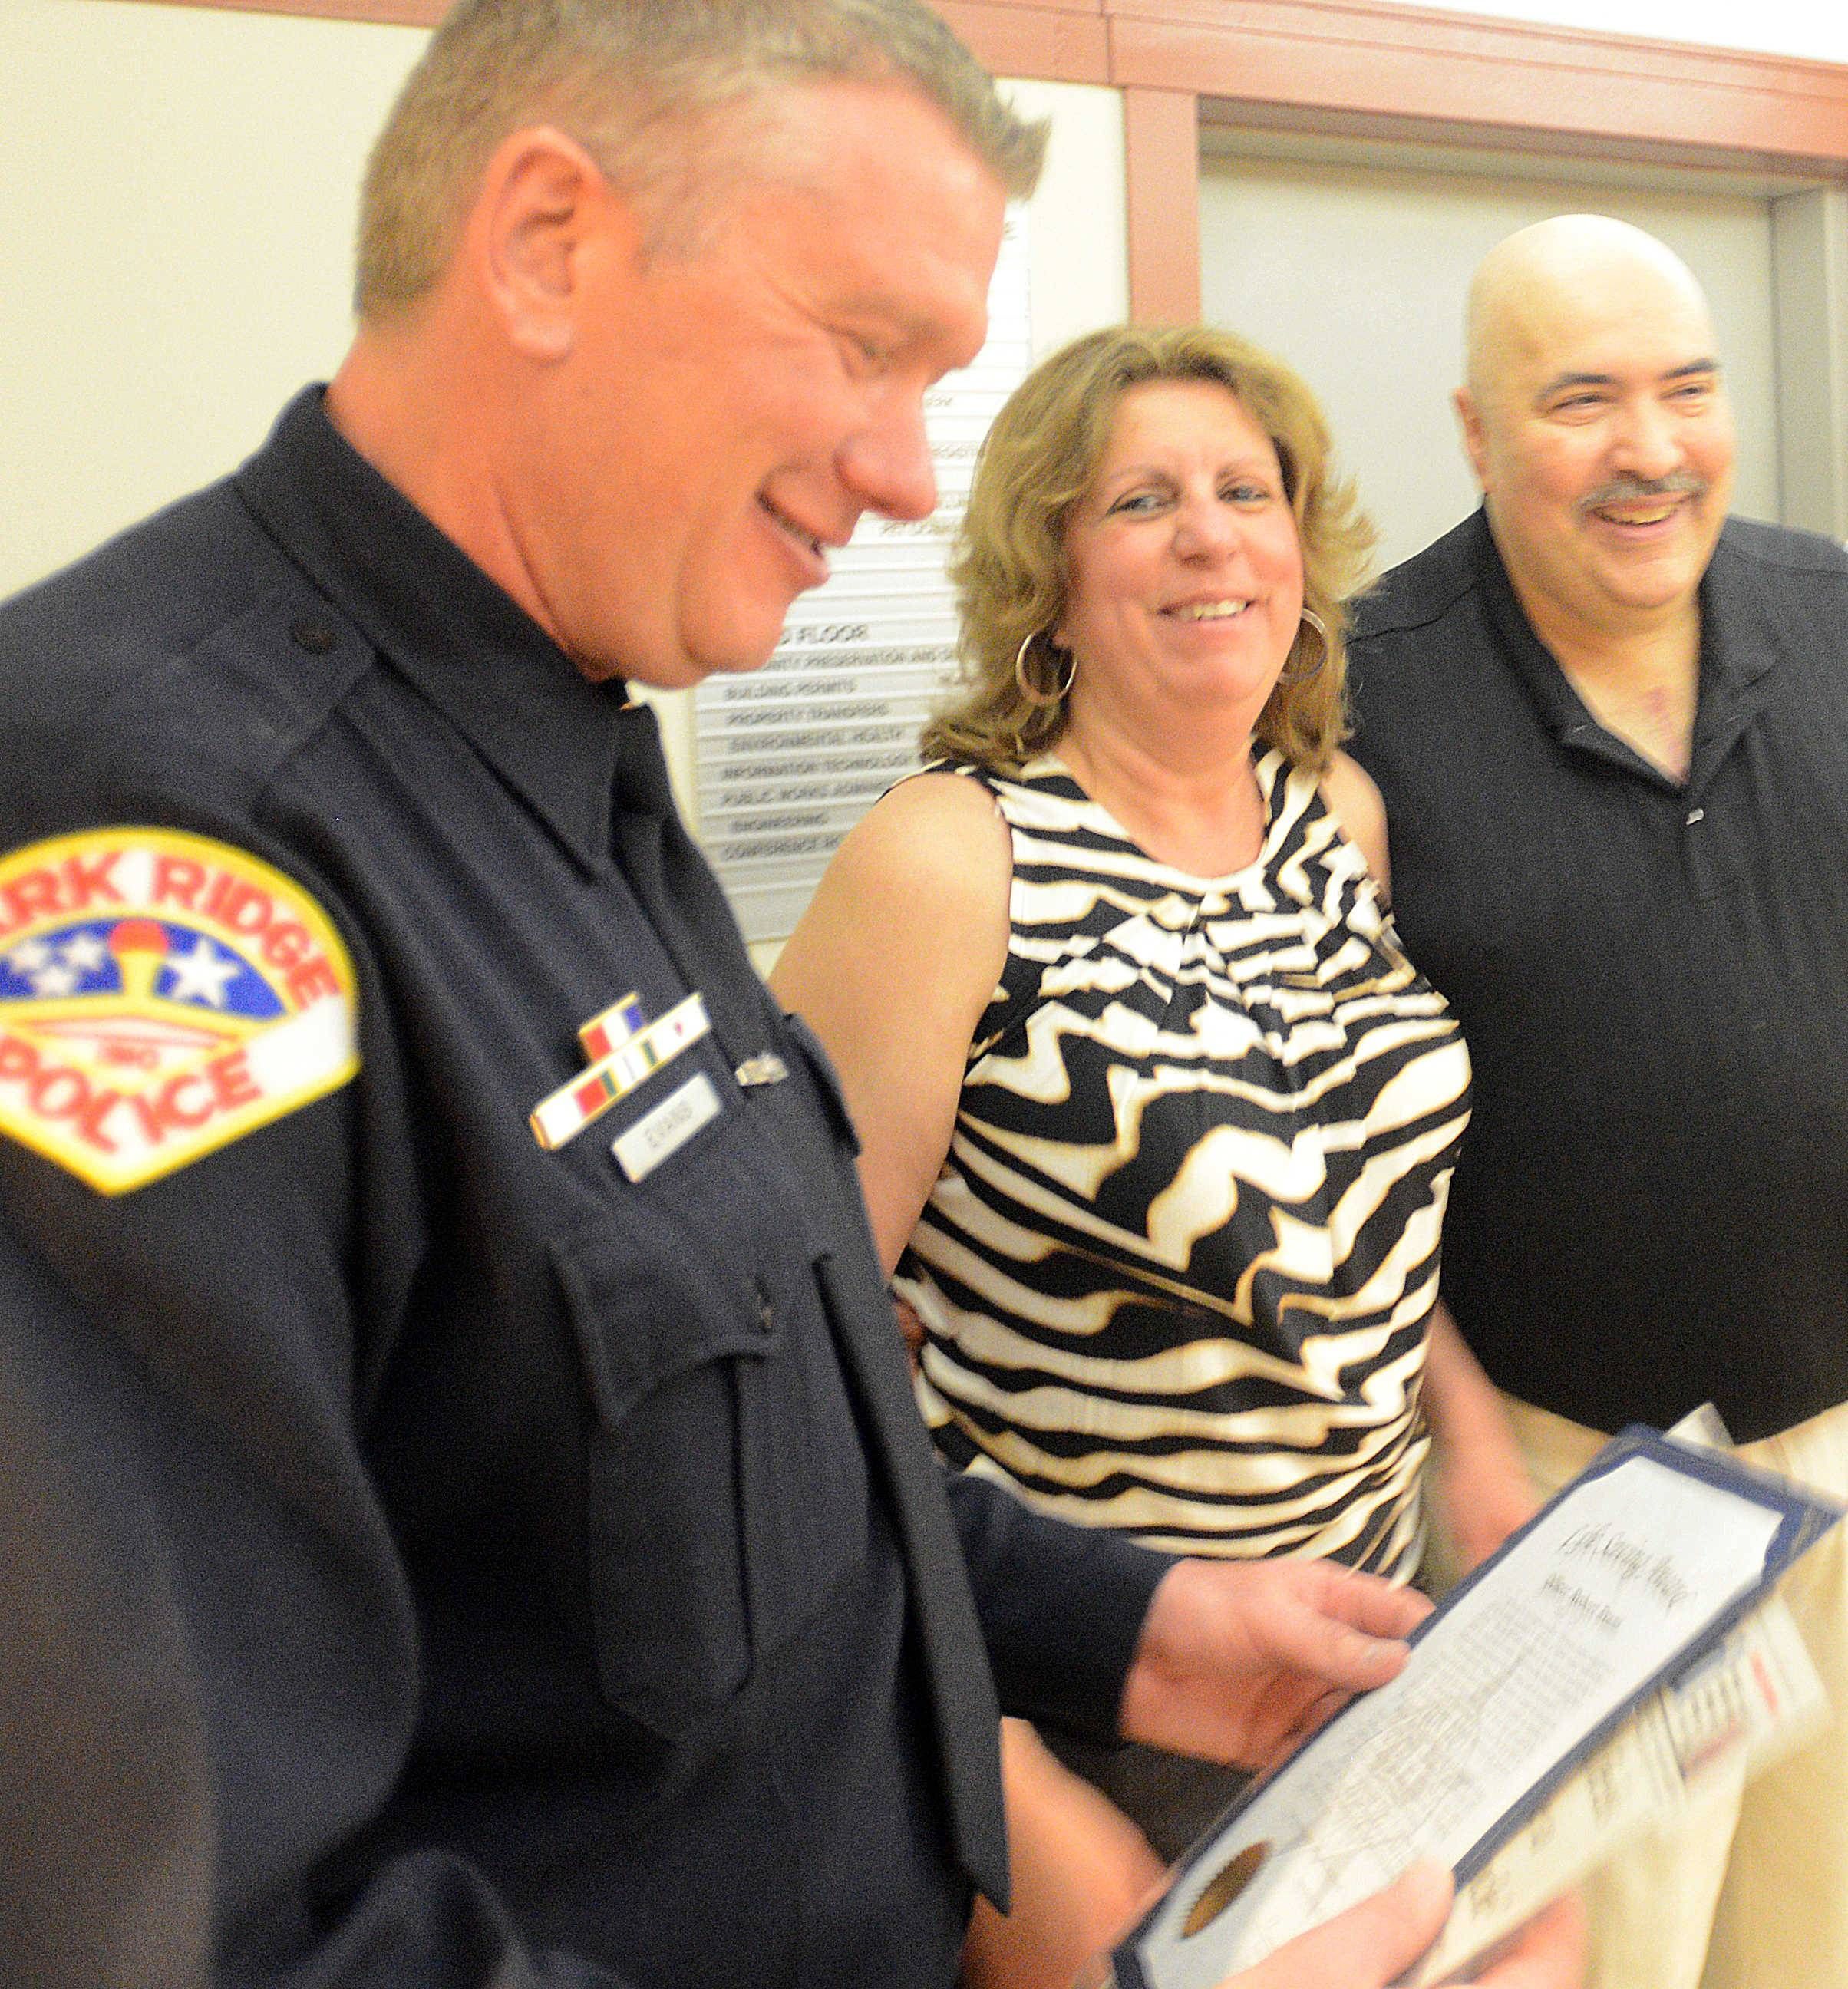 Park Ridge police Officer Robert Evans, left, looks at a certificate of recognition as he shares a laugh with Vita and Jim Maglieri of Mount Prospect on Monday night. Evans was one of several first responders and ordinary citizens honored Monday for helping to save Jim Maglieri's life after he suffered a heart attack March 20 while driving through Park Ridge.